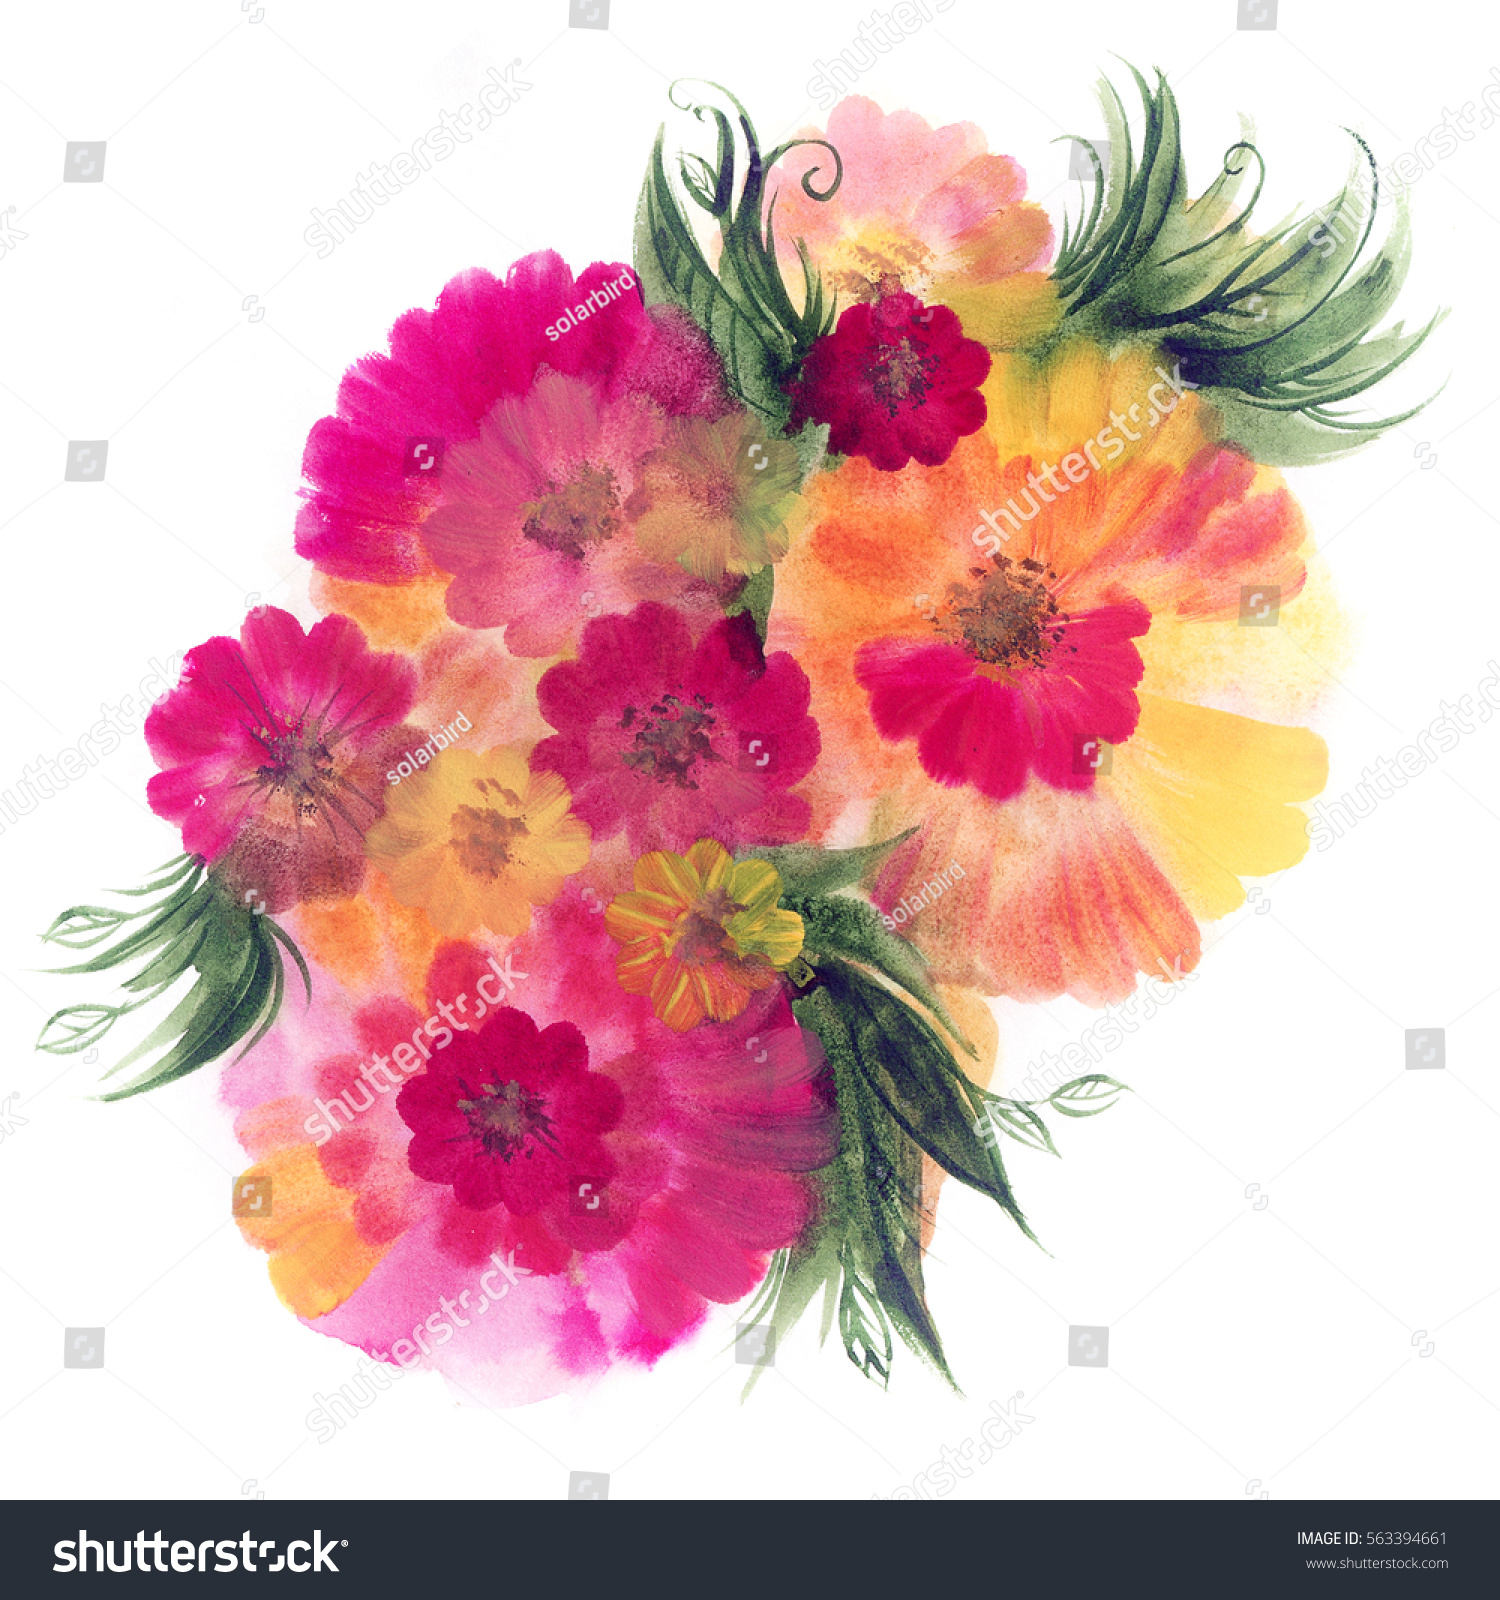 Floral Watercolor Bouquet Vintage Hand Drawn Stock Illustration